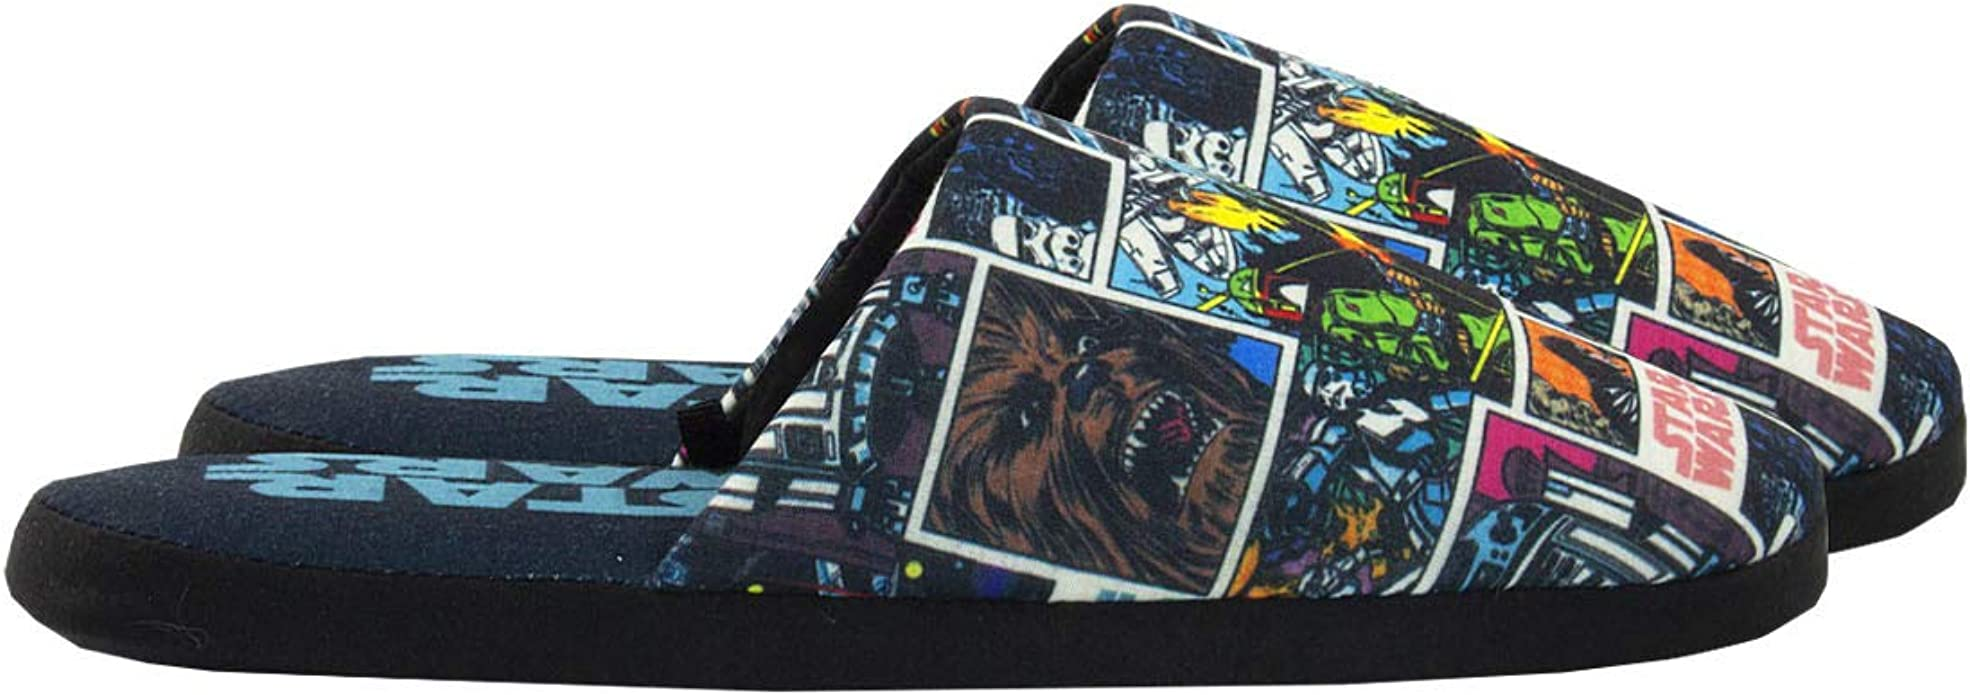 Vanilla underground Star Wars Comic Toutes Surimpression Polyester Multicolores Hommes Chaussons